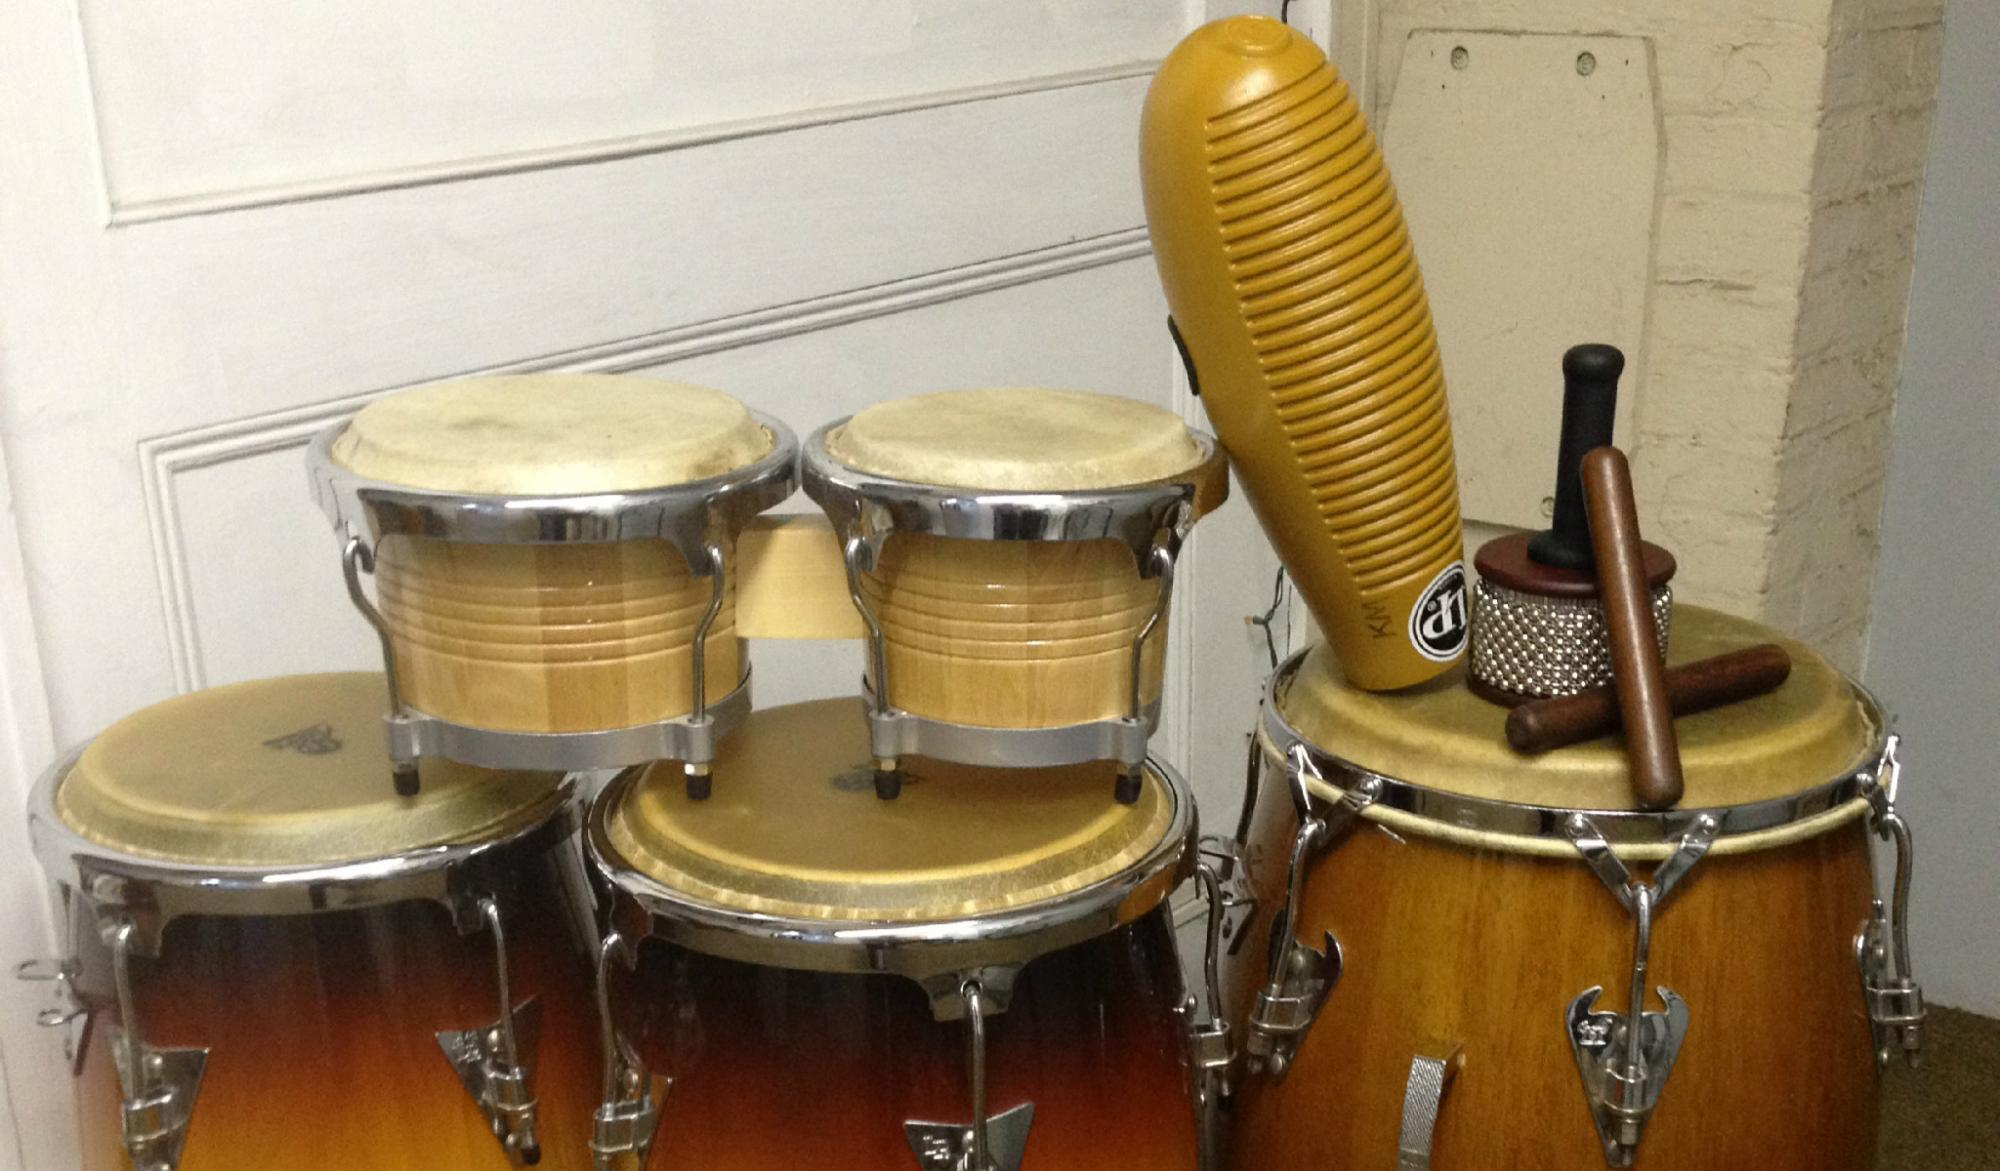 Announcing the next installment of our monthly Latin Percussion Jam!